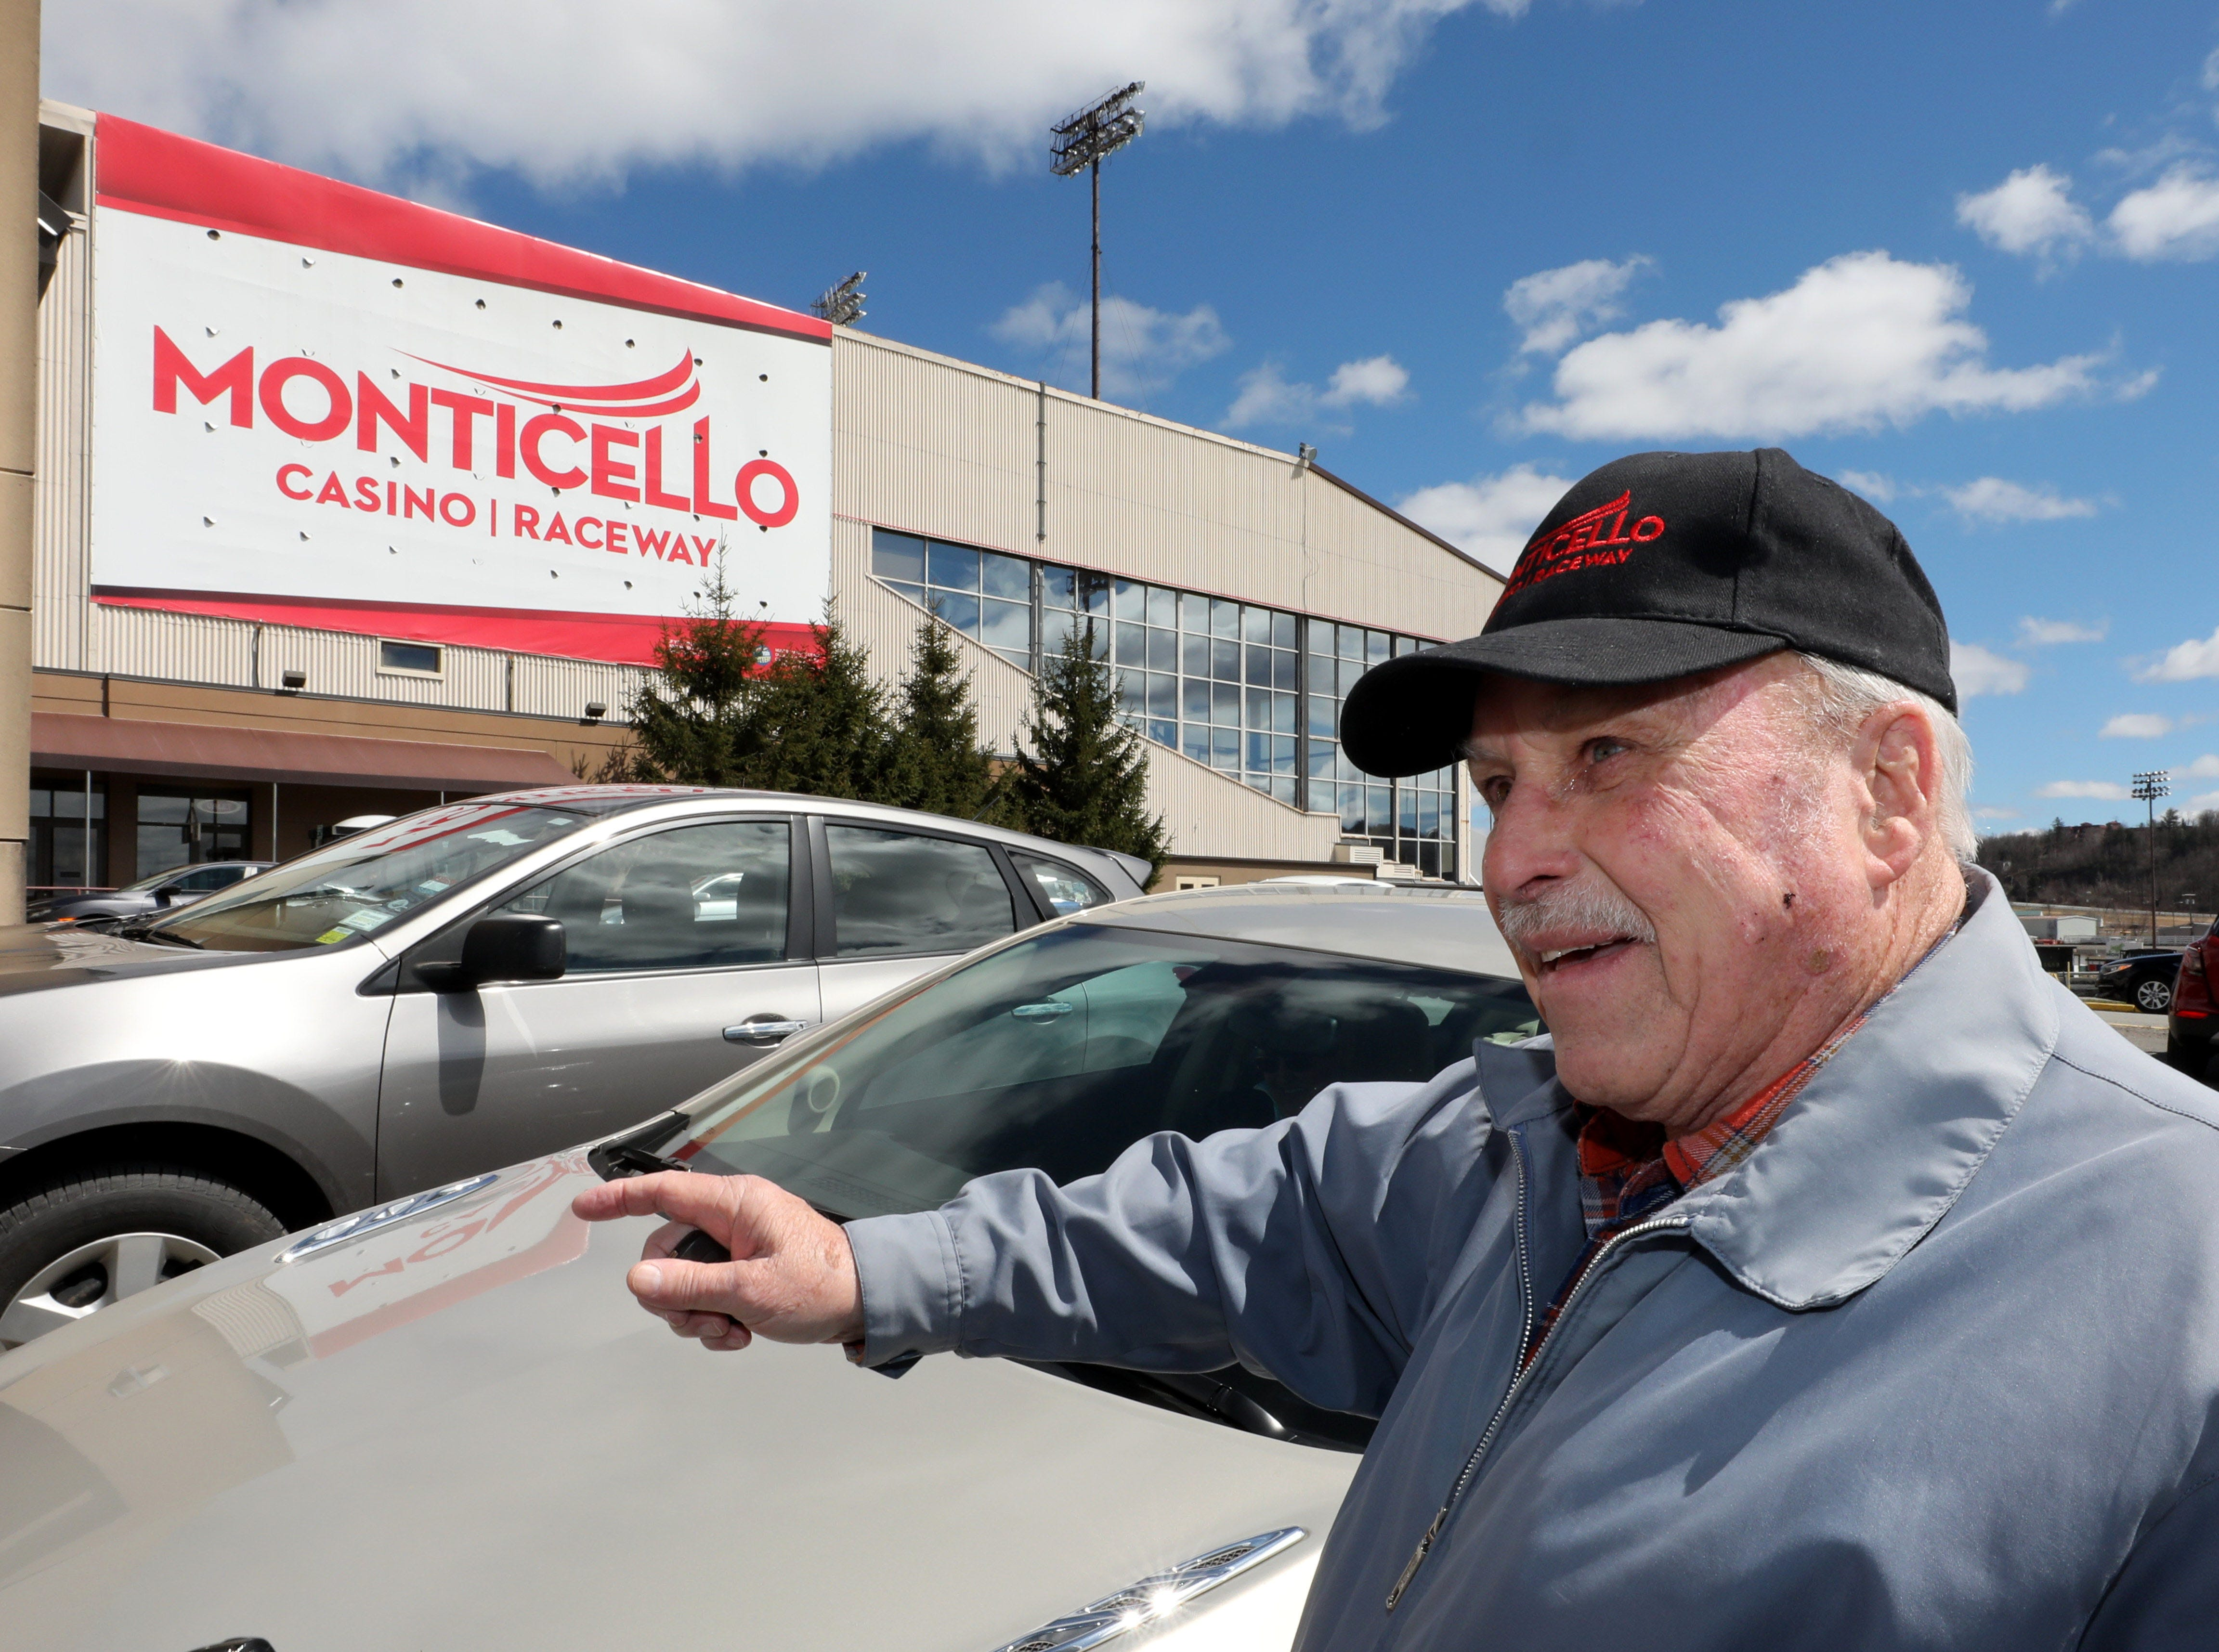 Hunter Rhinesmith talks about the imminent closing of the casino, at the Monticello Casino Raceway in Monticello, April 10, 2019.